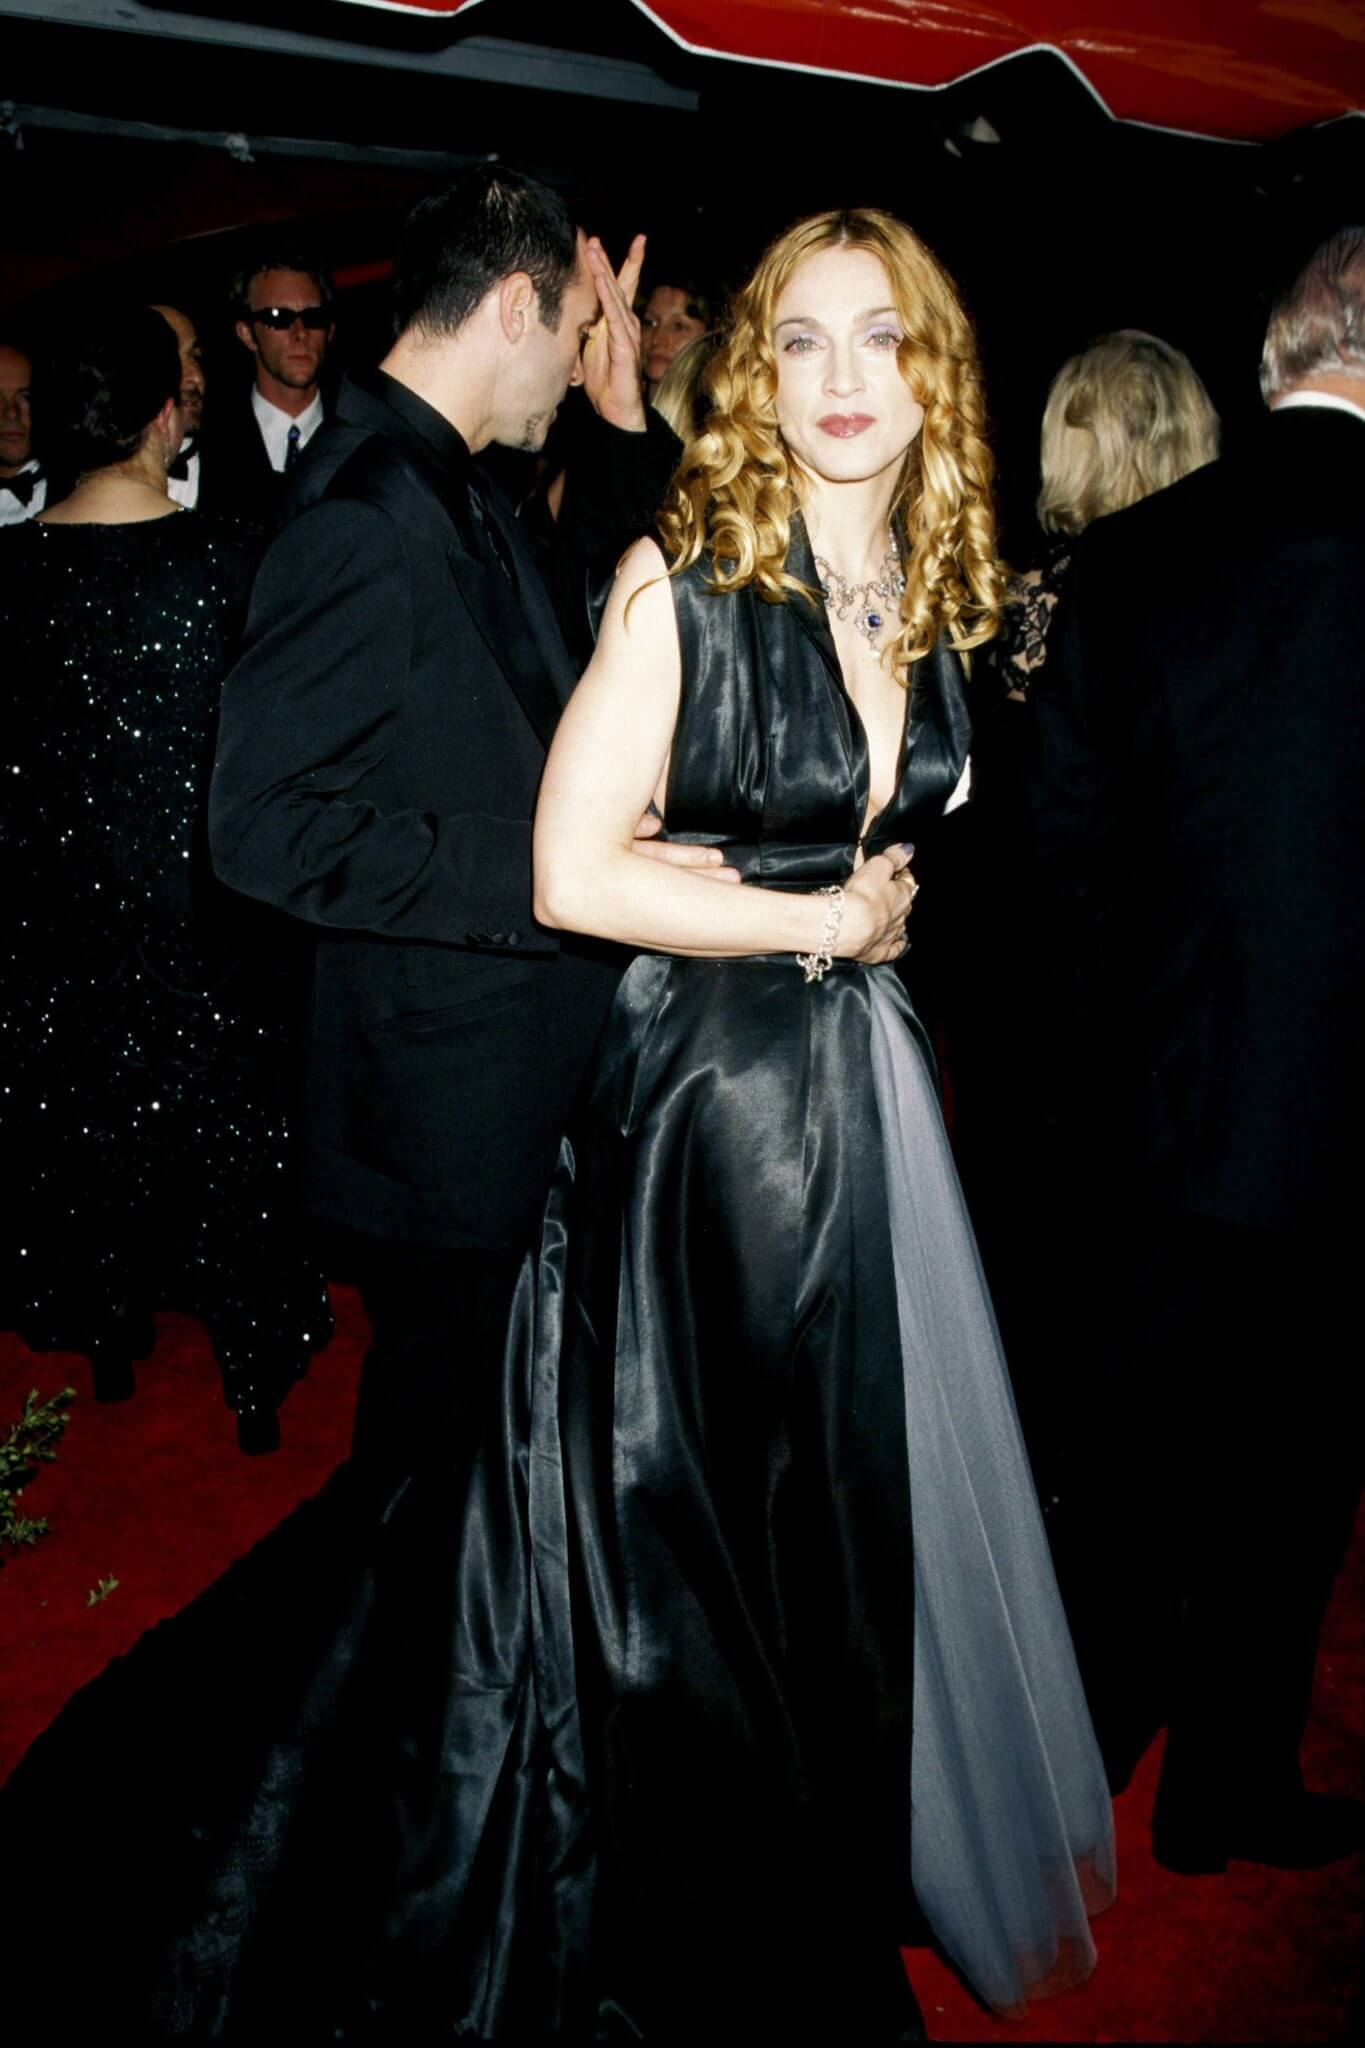 Madonna en los Academy Awards de 1998. Fotografía: Getty Images